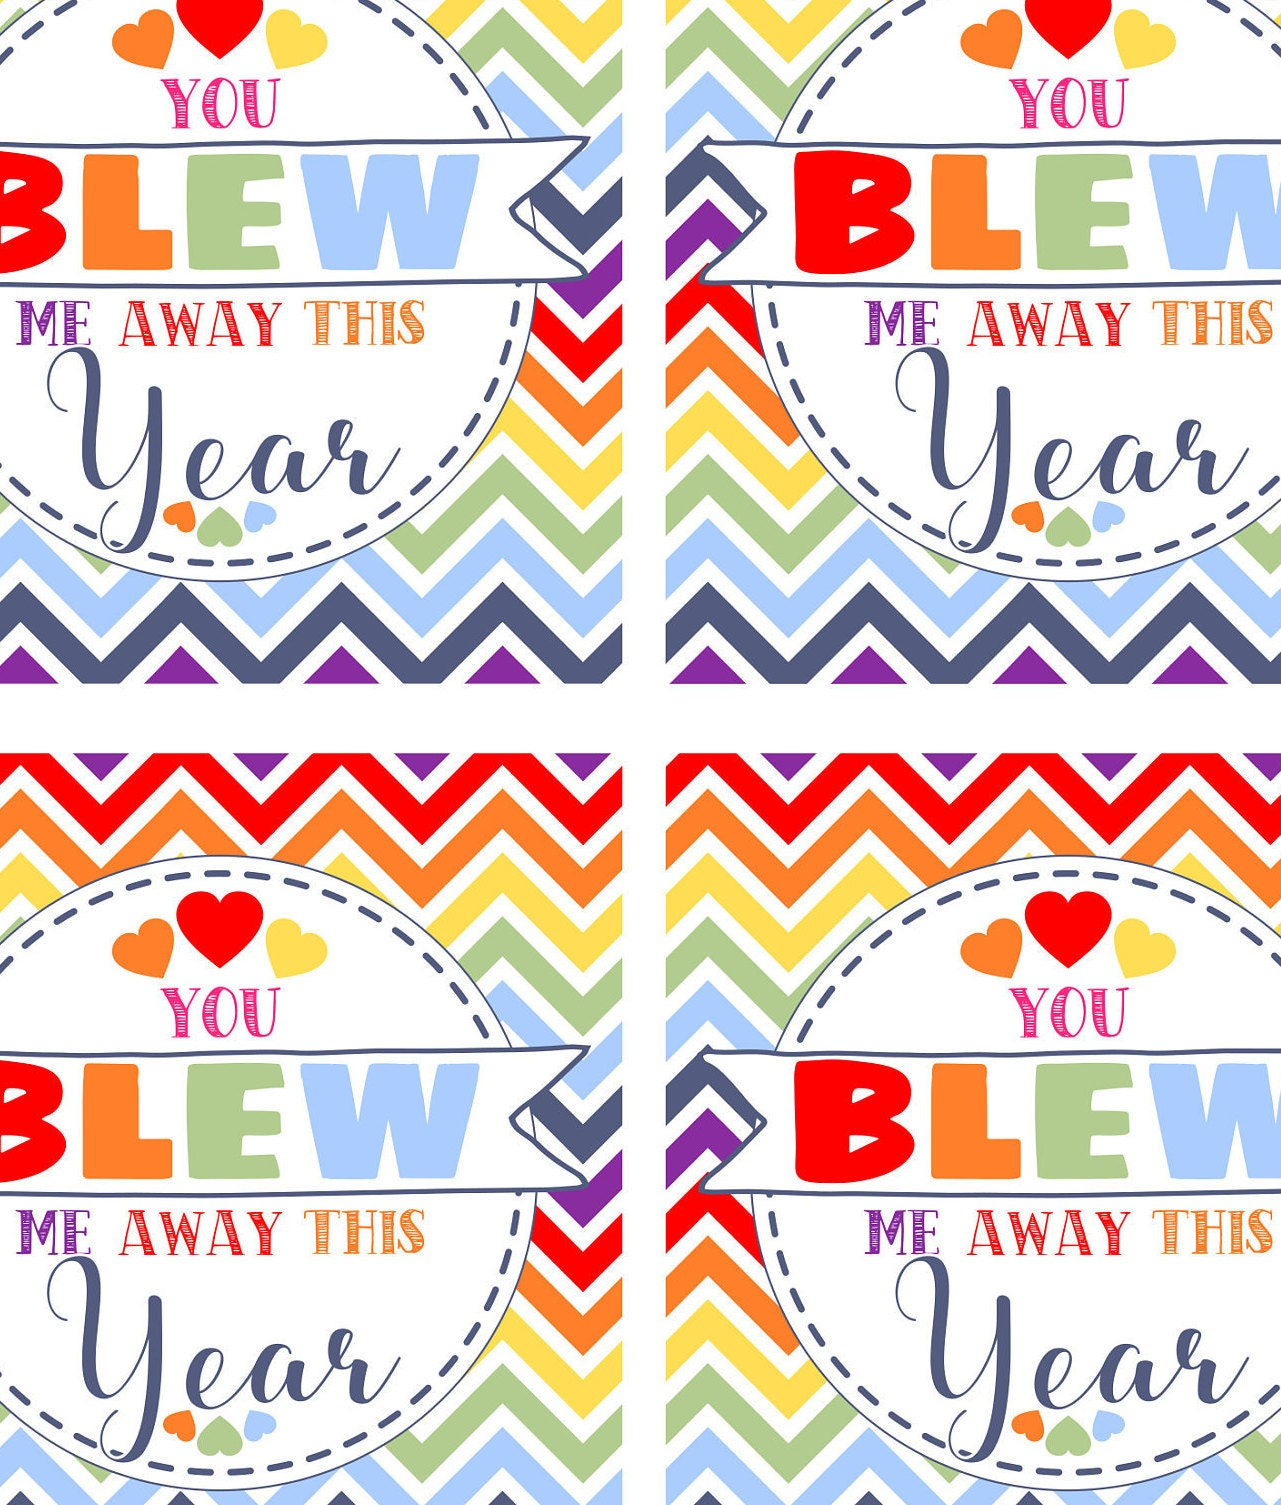 It's just a picture of Satisfactory You Blew Me Away This Year Free Printable